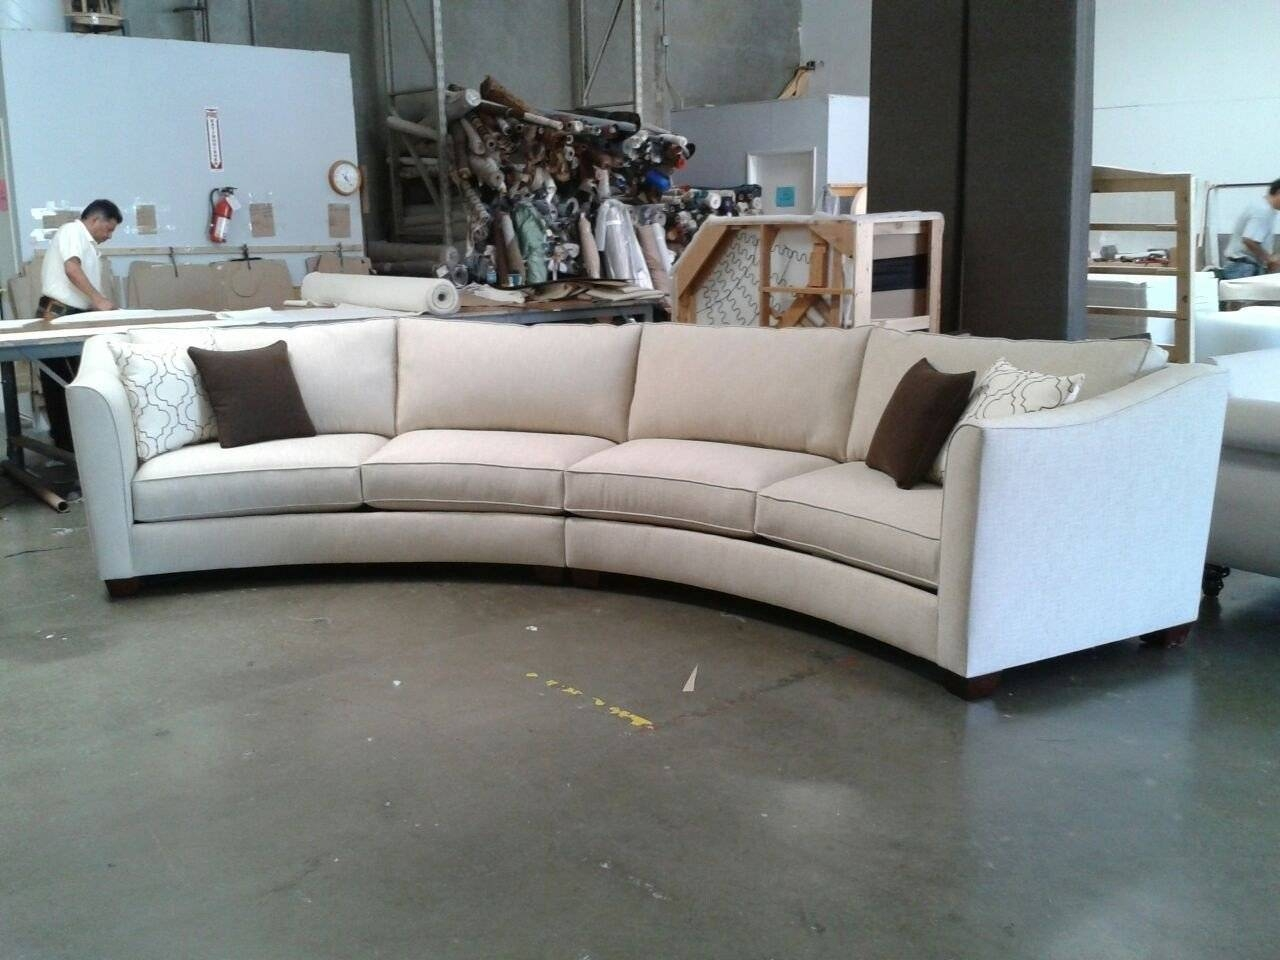 Curved Sectional Sofa: Glamour For Interior — Home Design inside Round Sectional Sofa (Image 4 of 30)